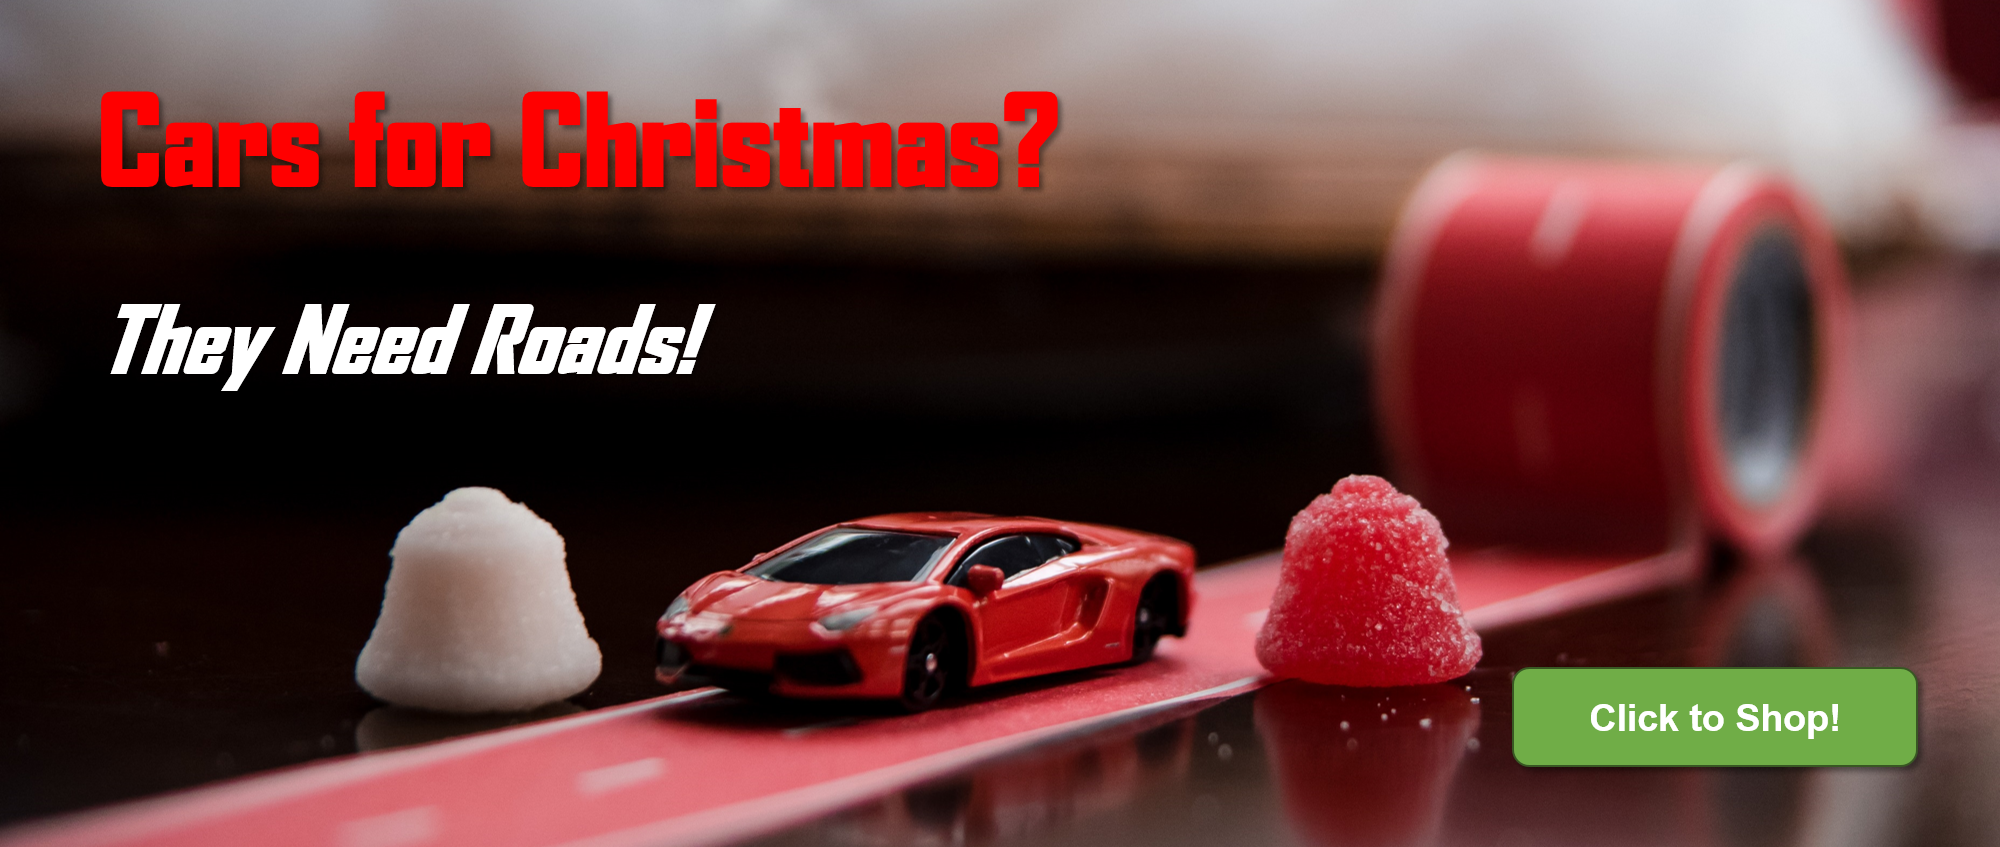 Cars for Christmas? They need Roads!